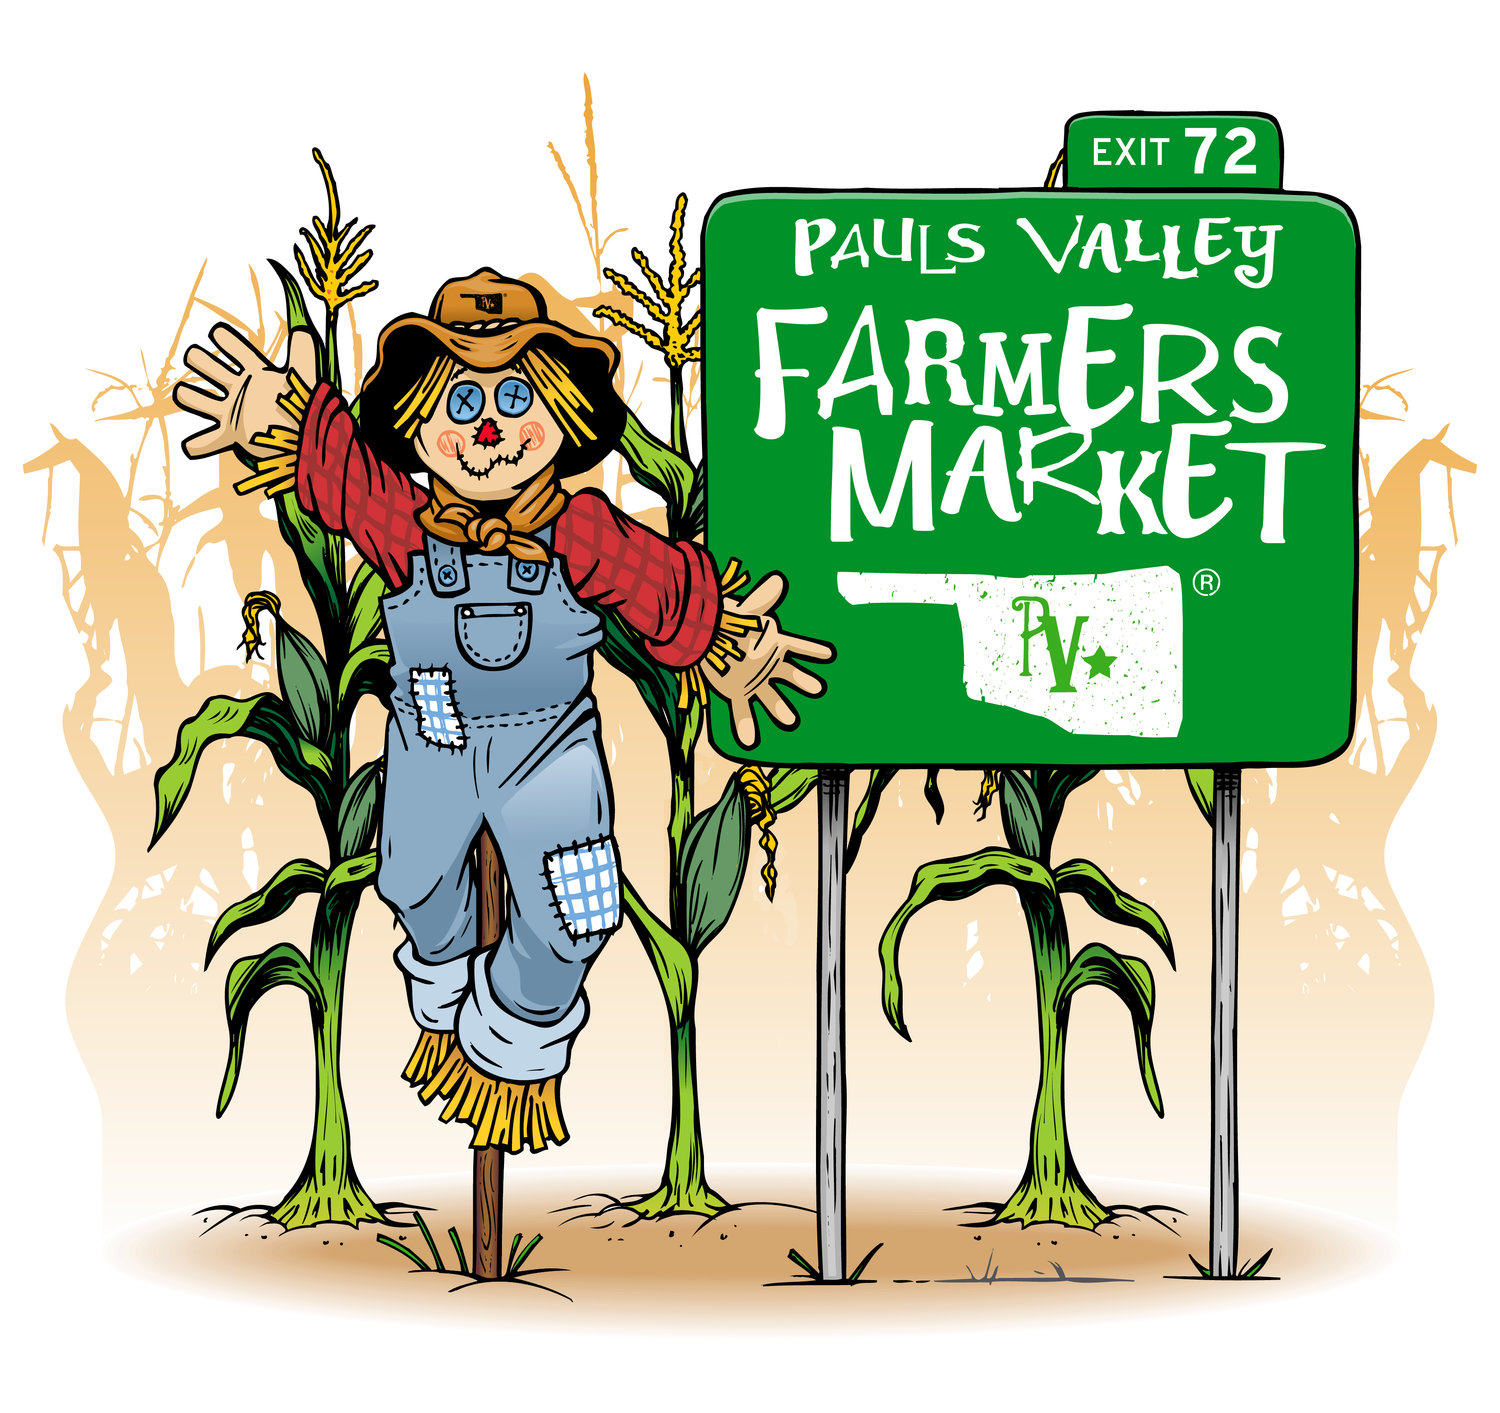 The Pauls Valley Farmers Market